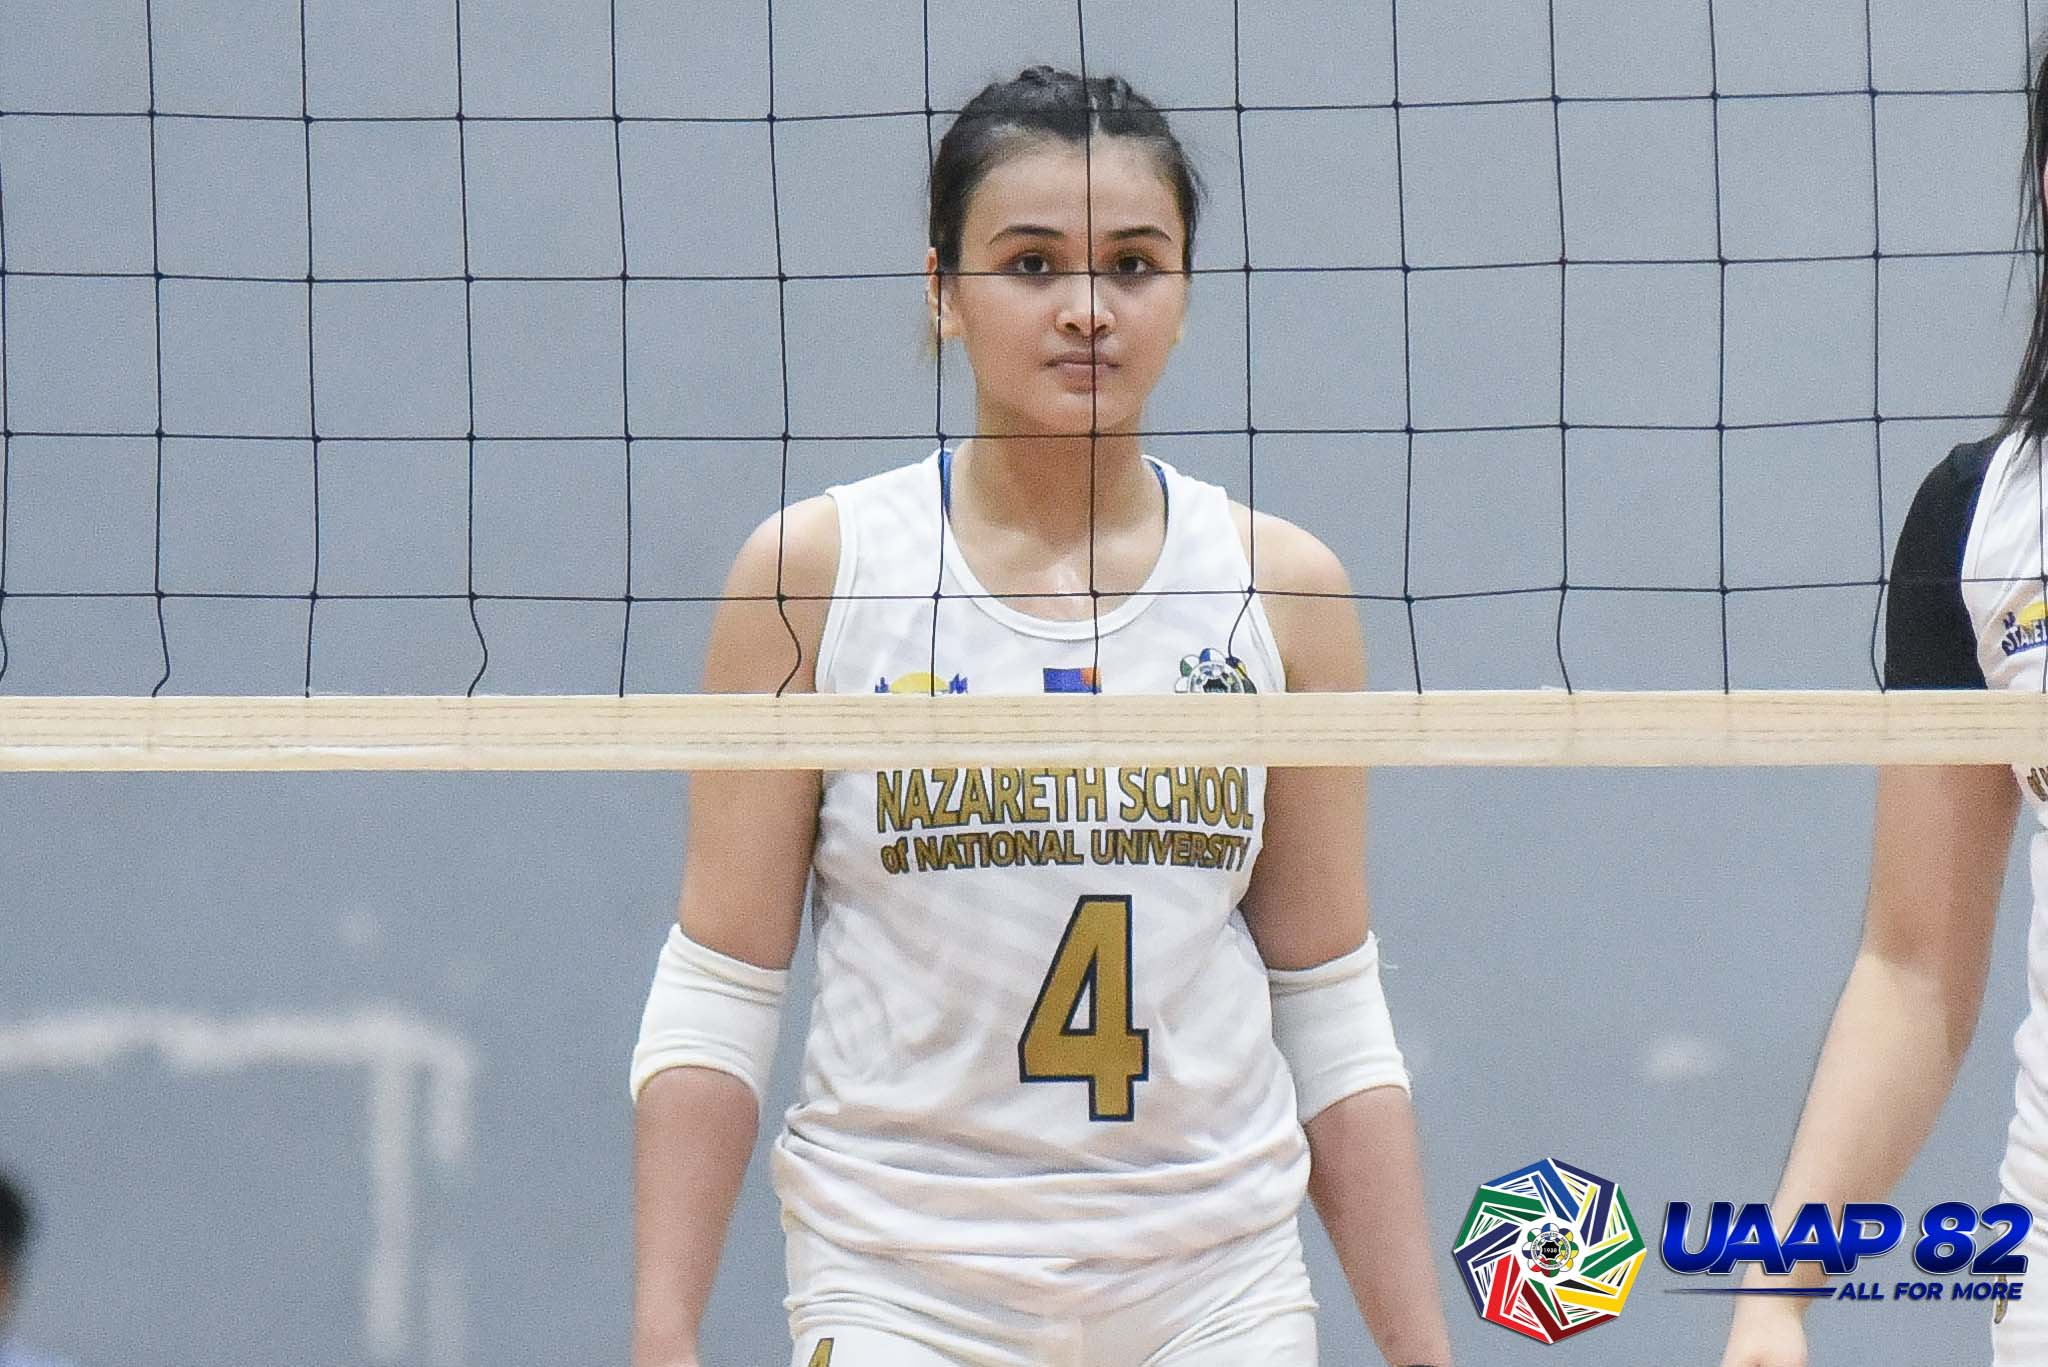 9TH-PHOTO-NU-MHICAELA-BELEN Suzara says 16 tryout attendees assured of NT spots 'in principle' 2021 SEA Games News Volleyball  - philippine sports news